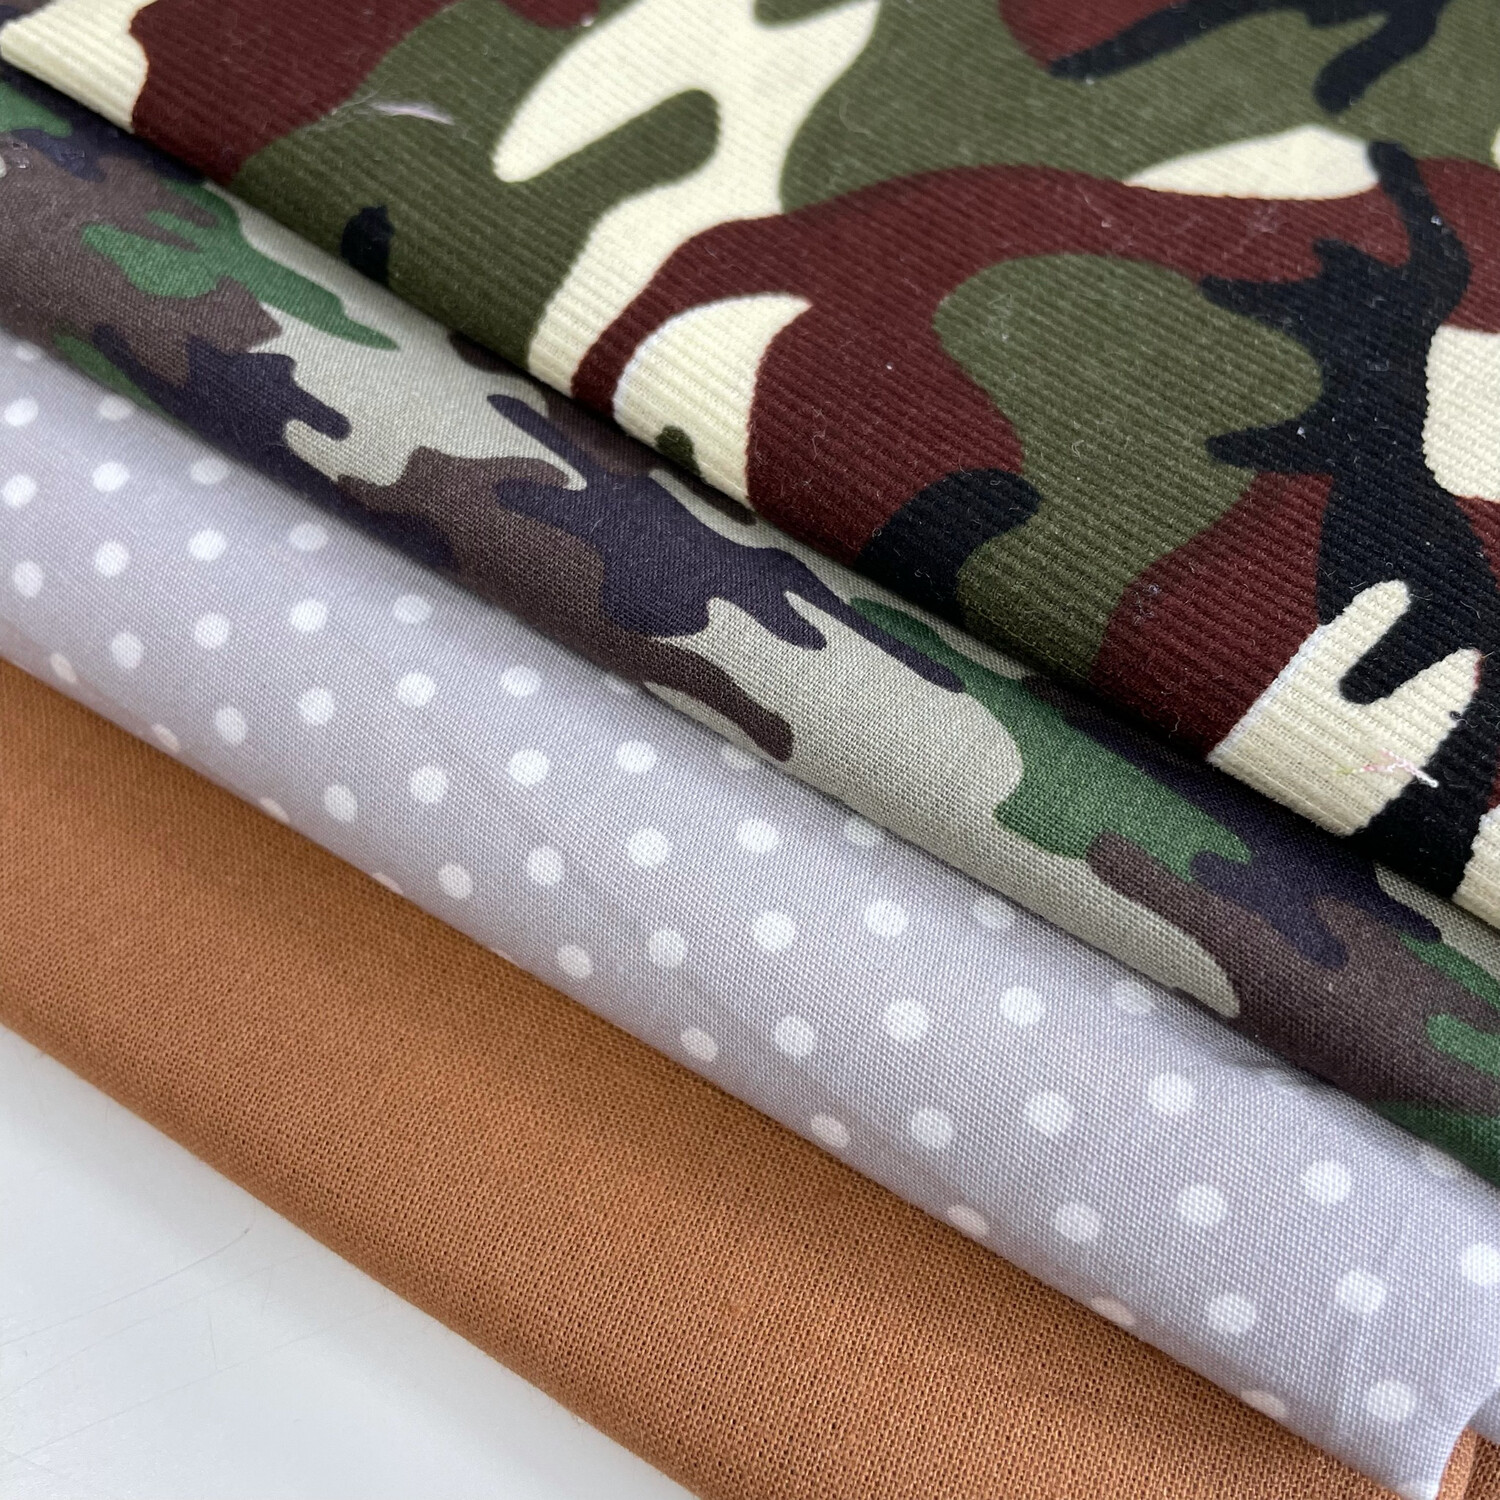 Remnant Cotton and Needlecord Bundle